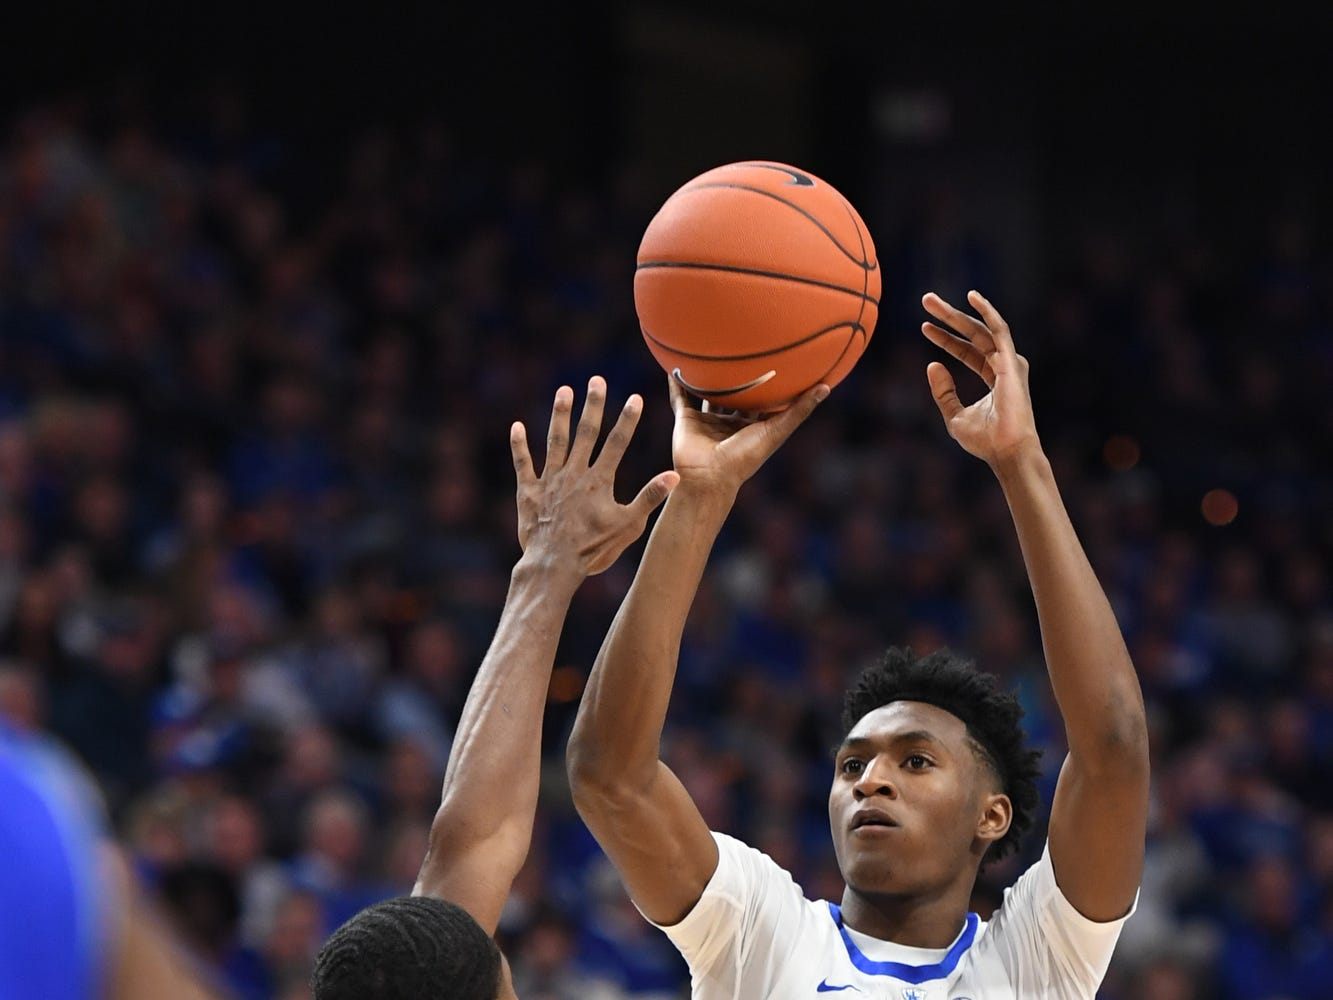 UK G Immanuel Quickley shoots the ball during the University of Kentucky men's basketball game against Tennessee State at Rupp Arena in Lexington, Kentucky, on Friday, Nov. 23, 2018.